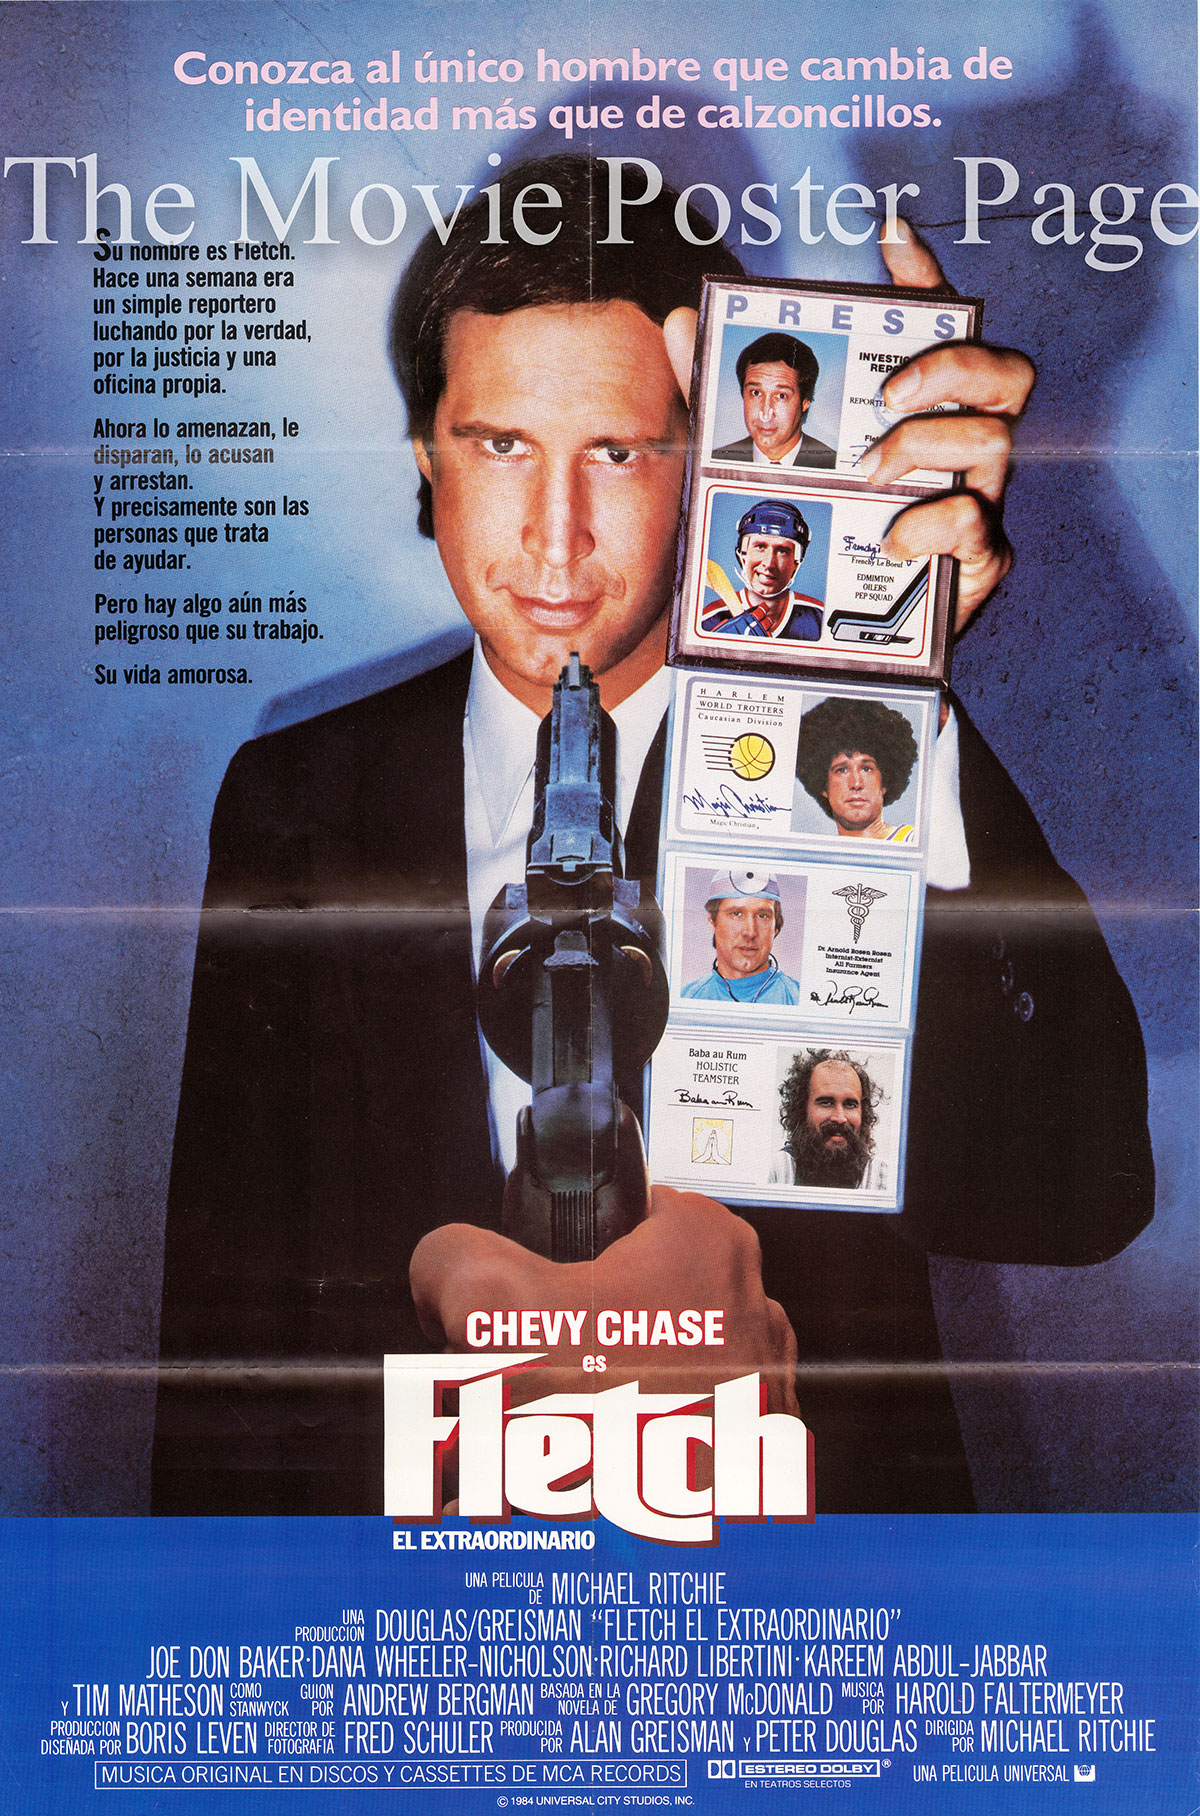 Pictured is a Spanish poster for the 1985 Michael Ritchie film Fletch starring Chevy Chase as Irwin Fletch.